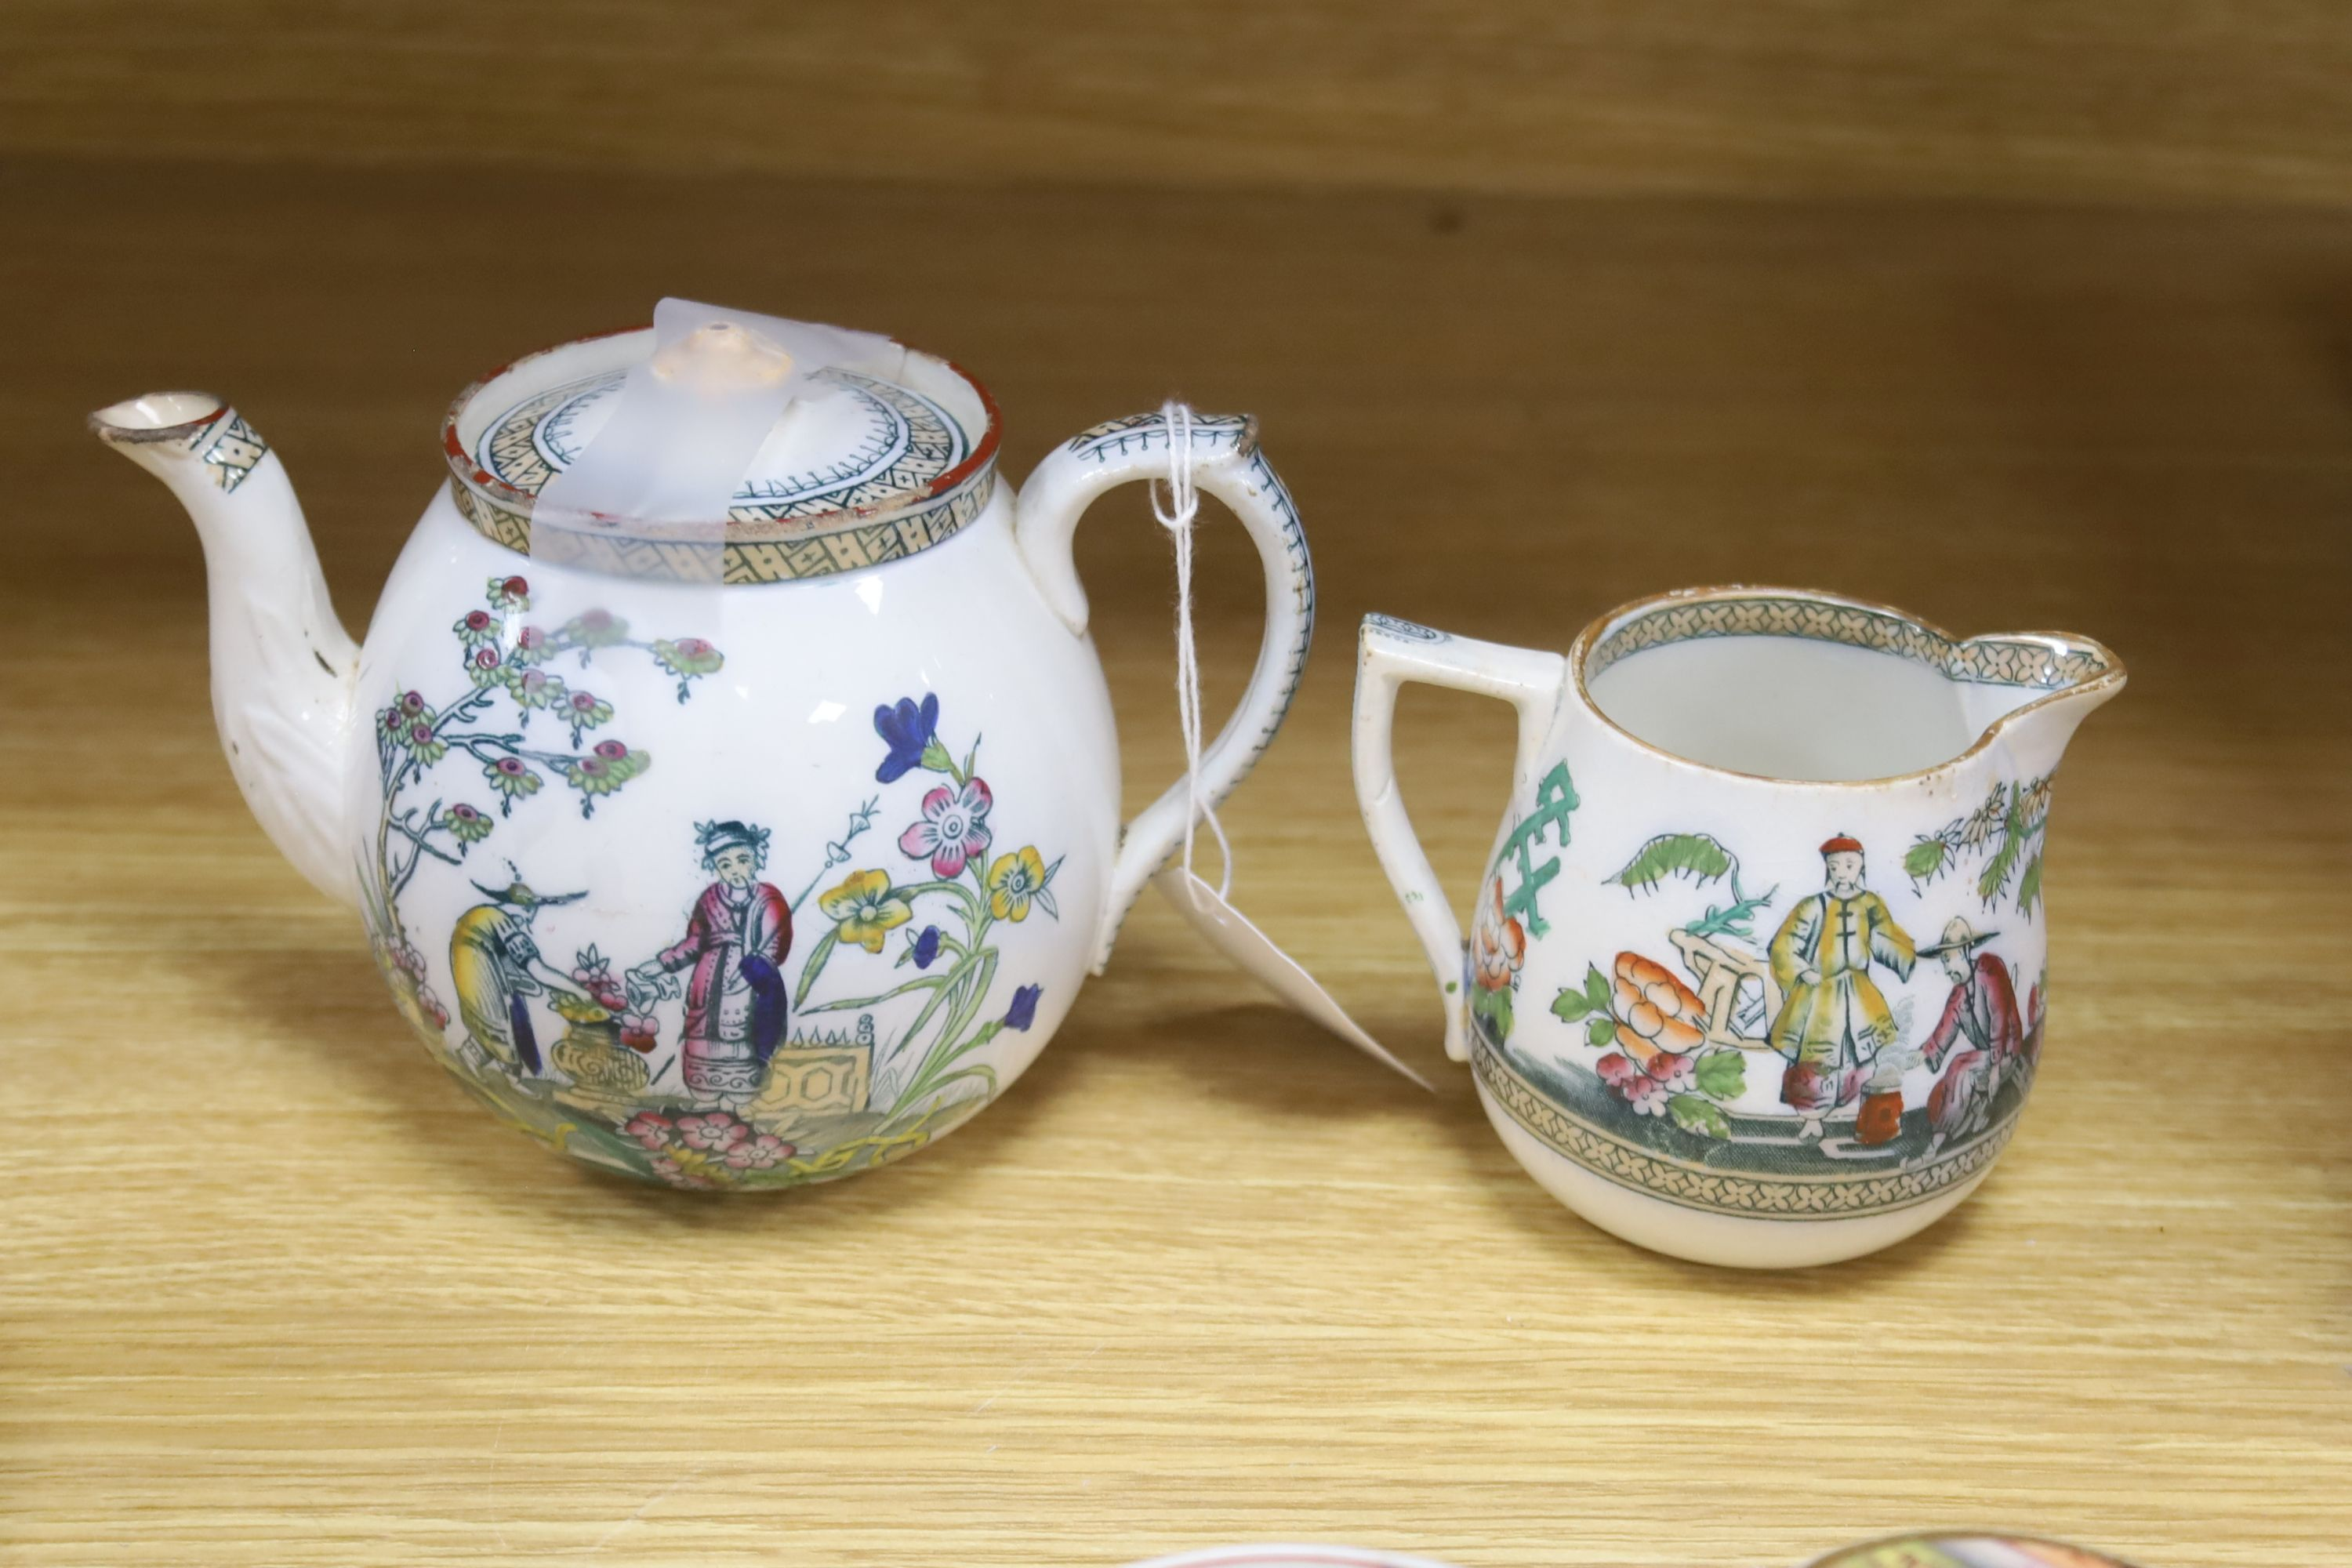 A small collection of English and Continental ceramics, including two 18th century tea bowlswith - Bild 6 aus 8